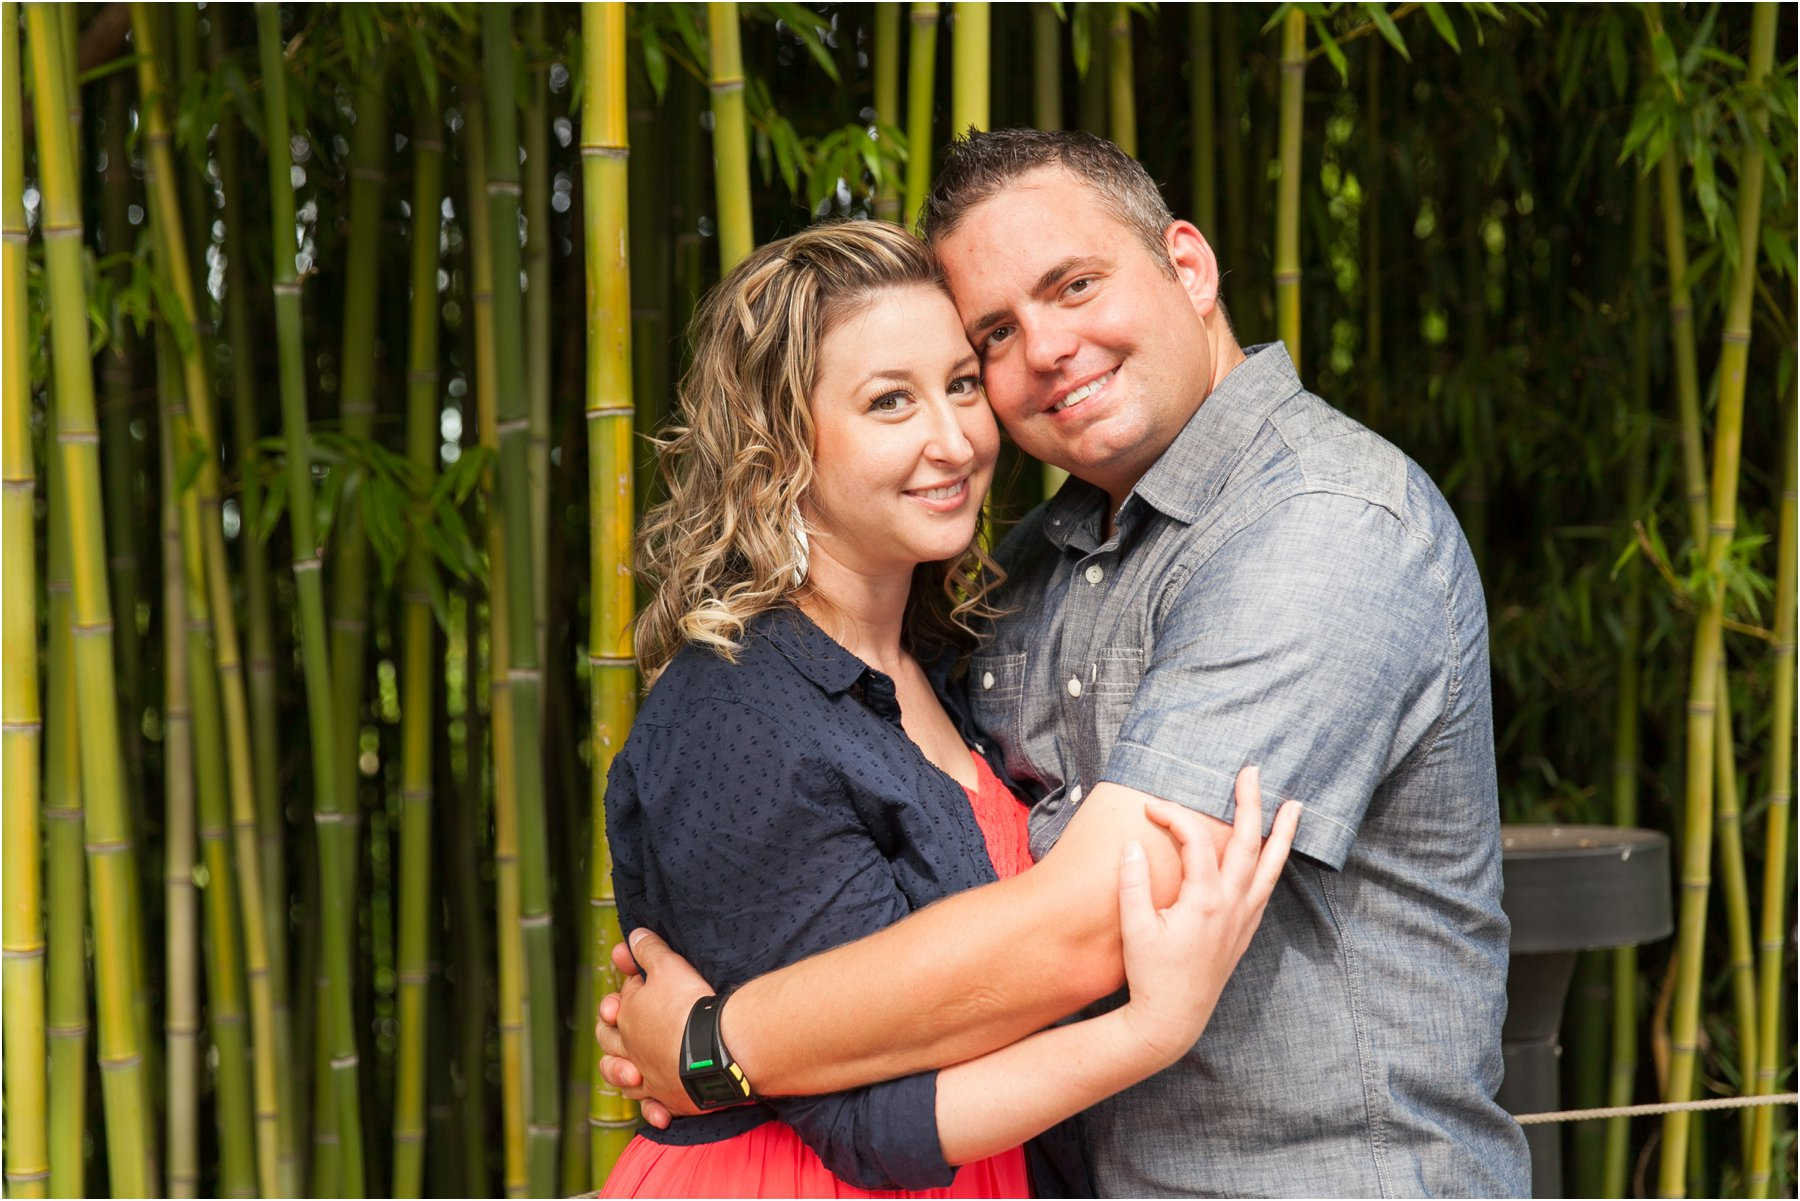 Nofolk_Zoo_engagement_photography_virginia_Jessica_ryan_photography_0139